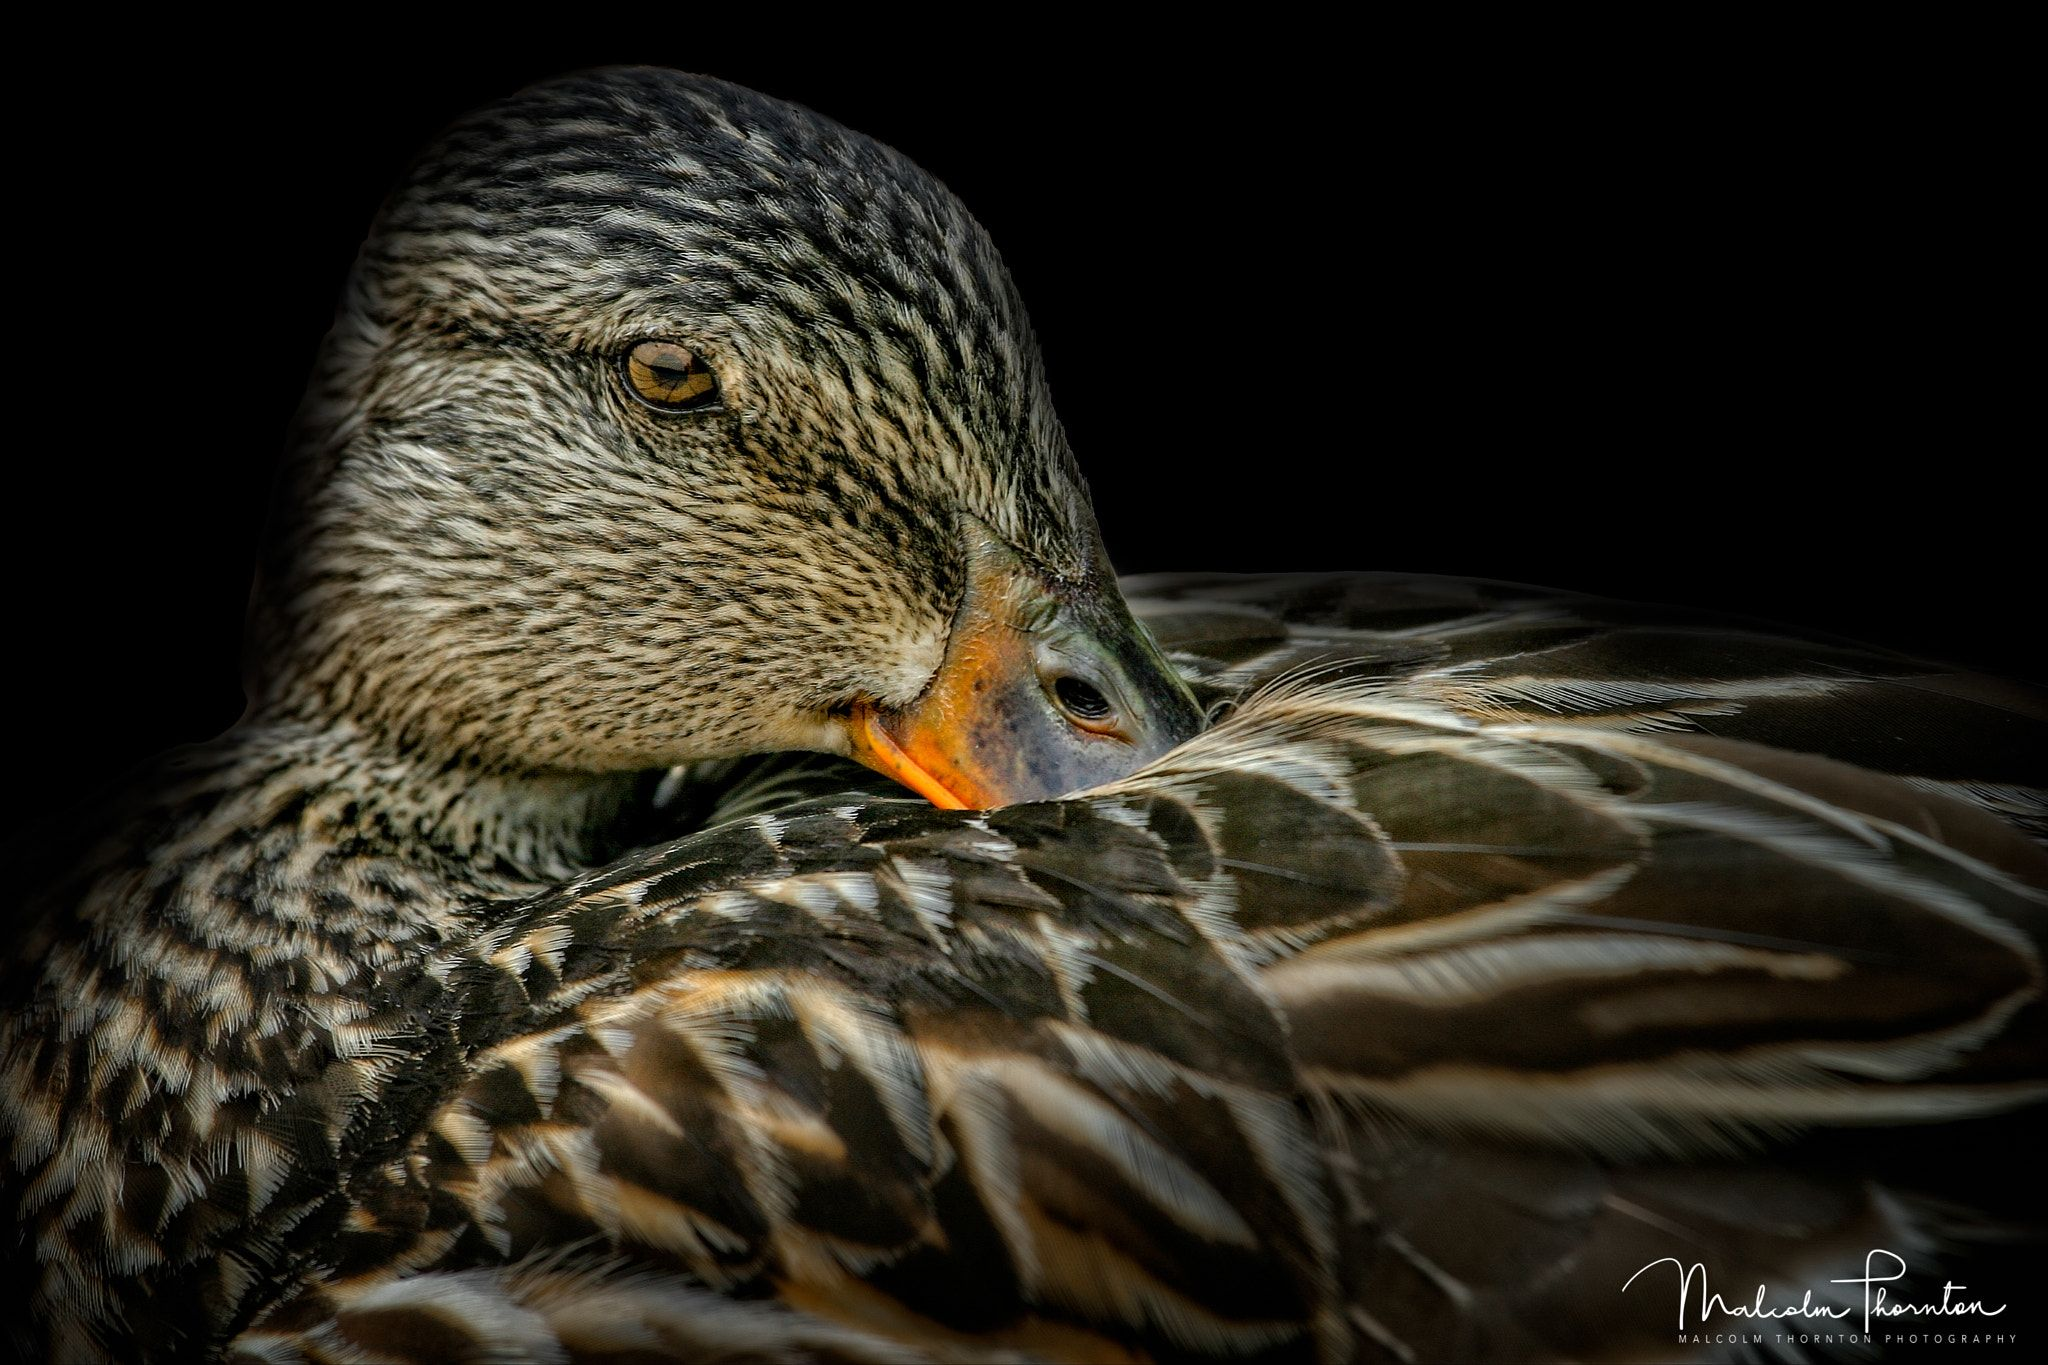 Resting Mallard Image Of A Female Mallard Duck Resting On